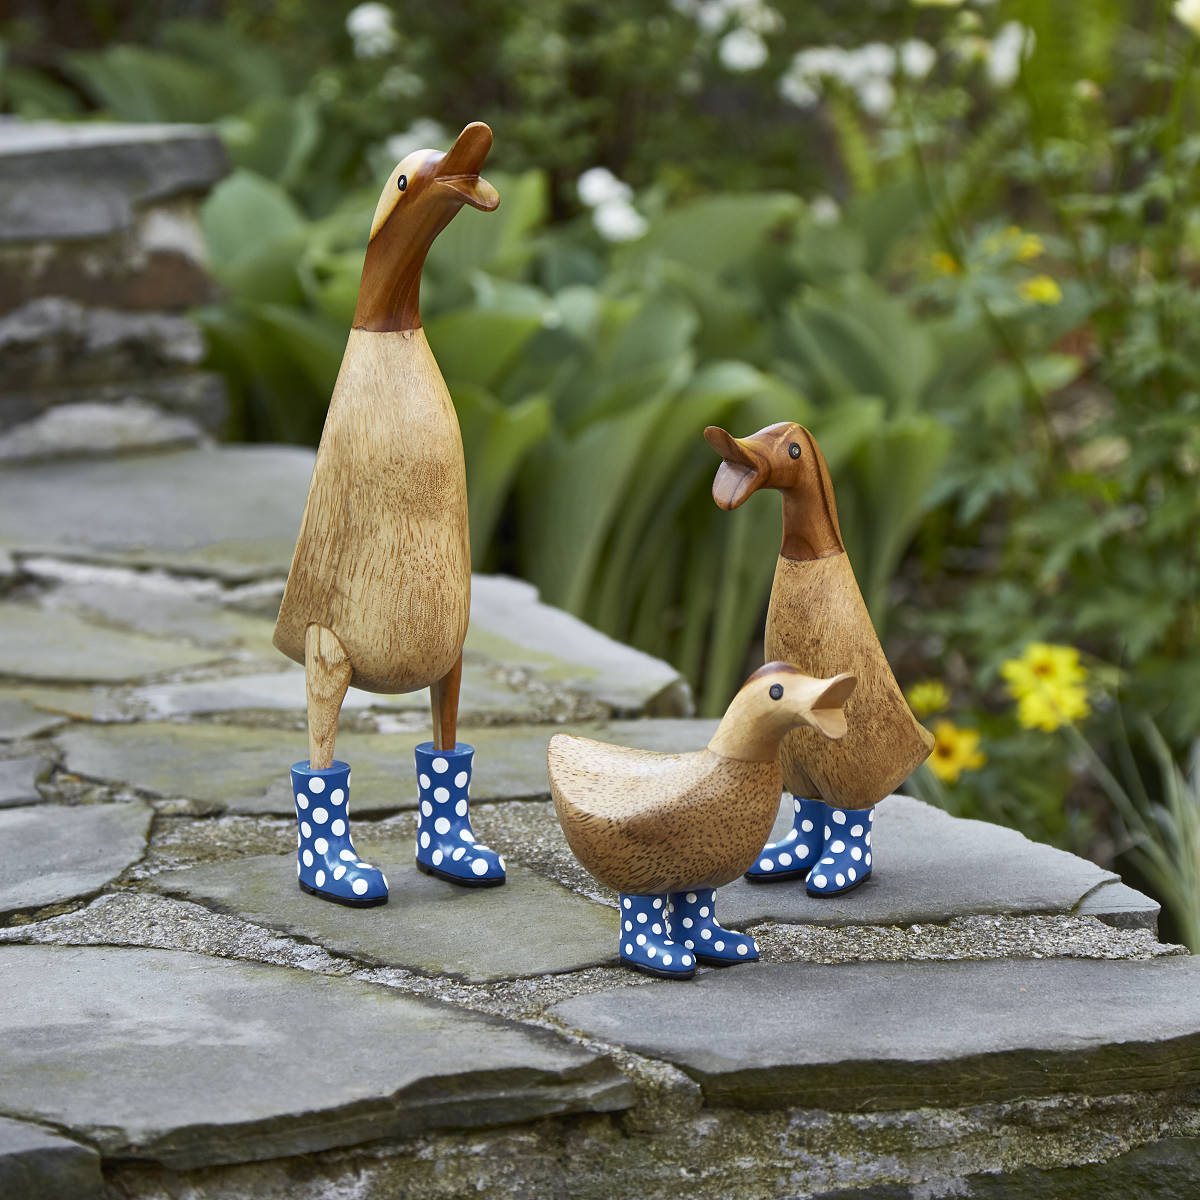 spotted wellies garden ducks 1 thumbnail - Pictures Of Ducks